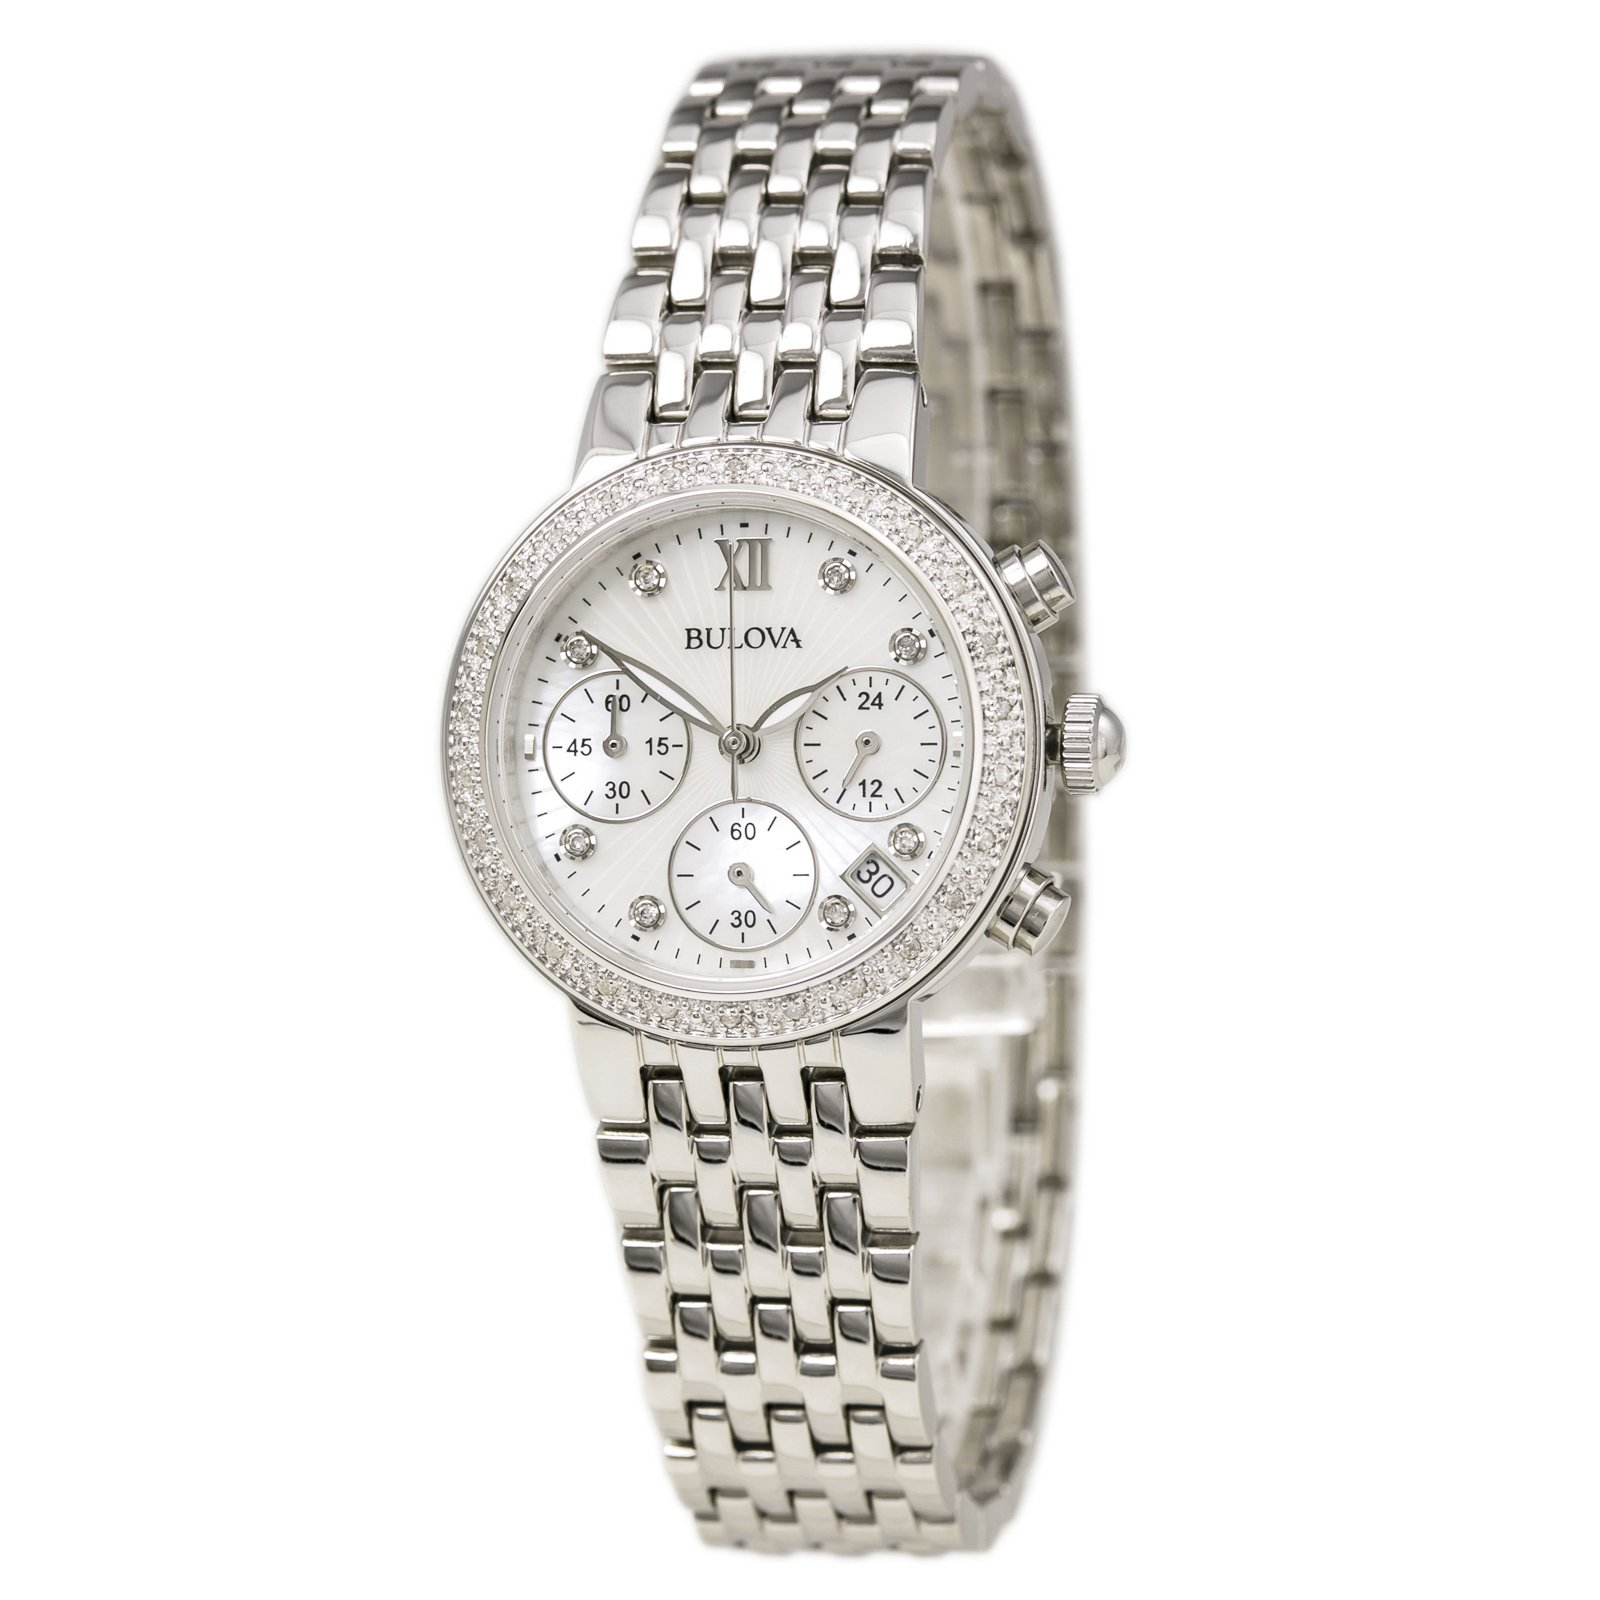 Bulova Stainless Steel Diamond Watch by Bulova